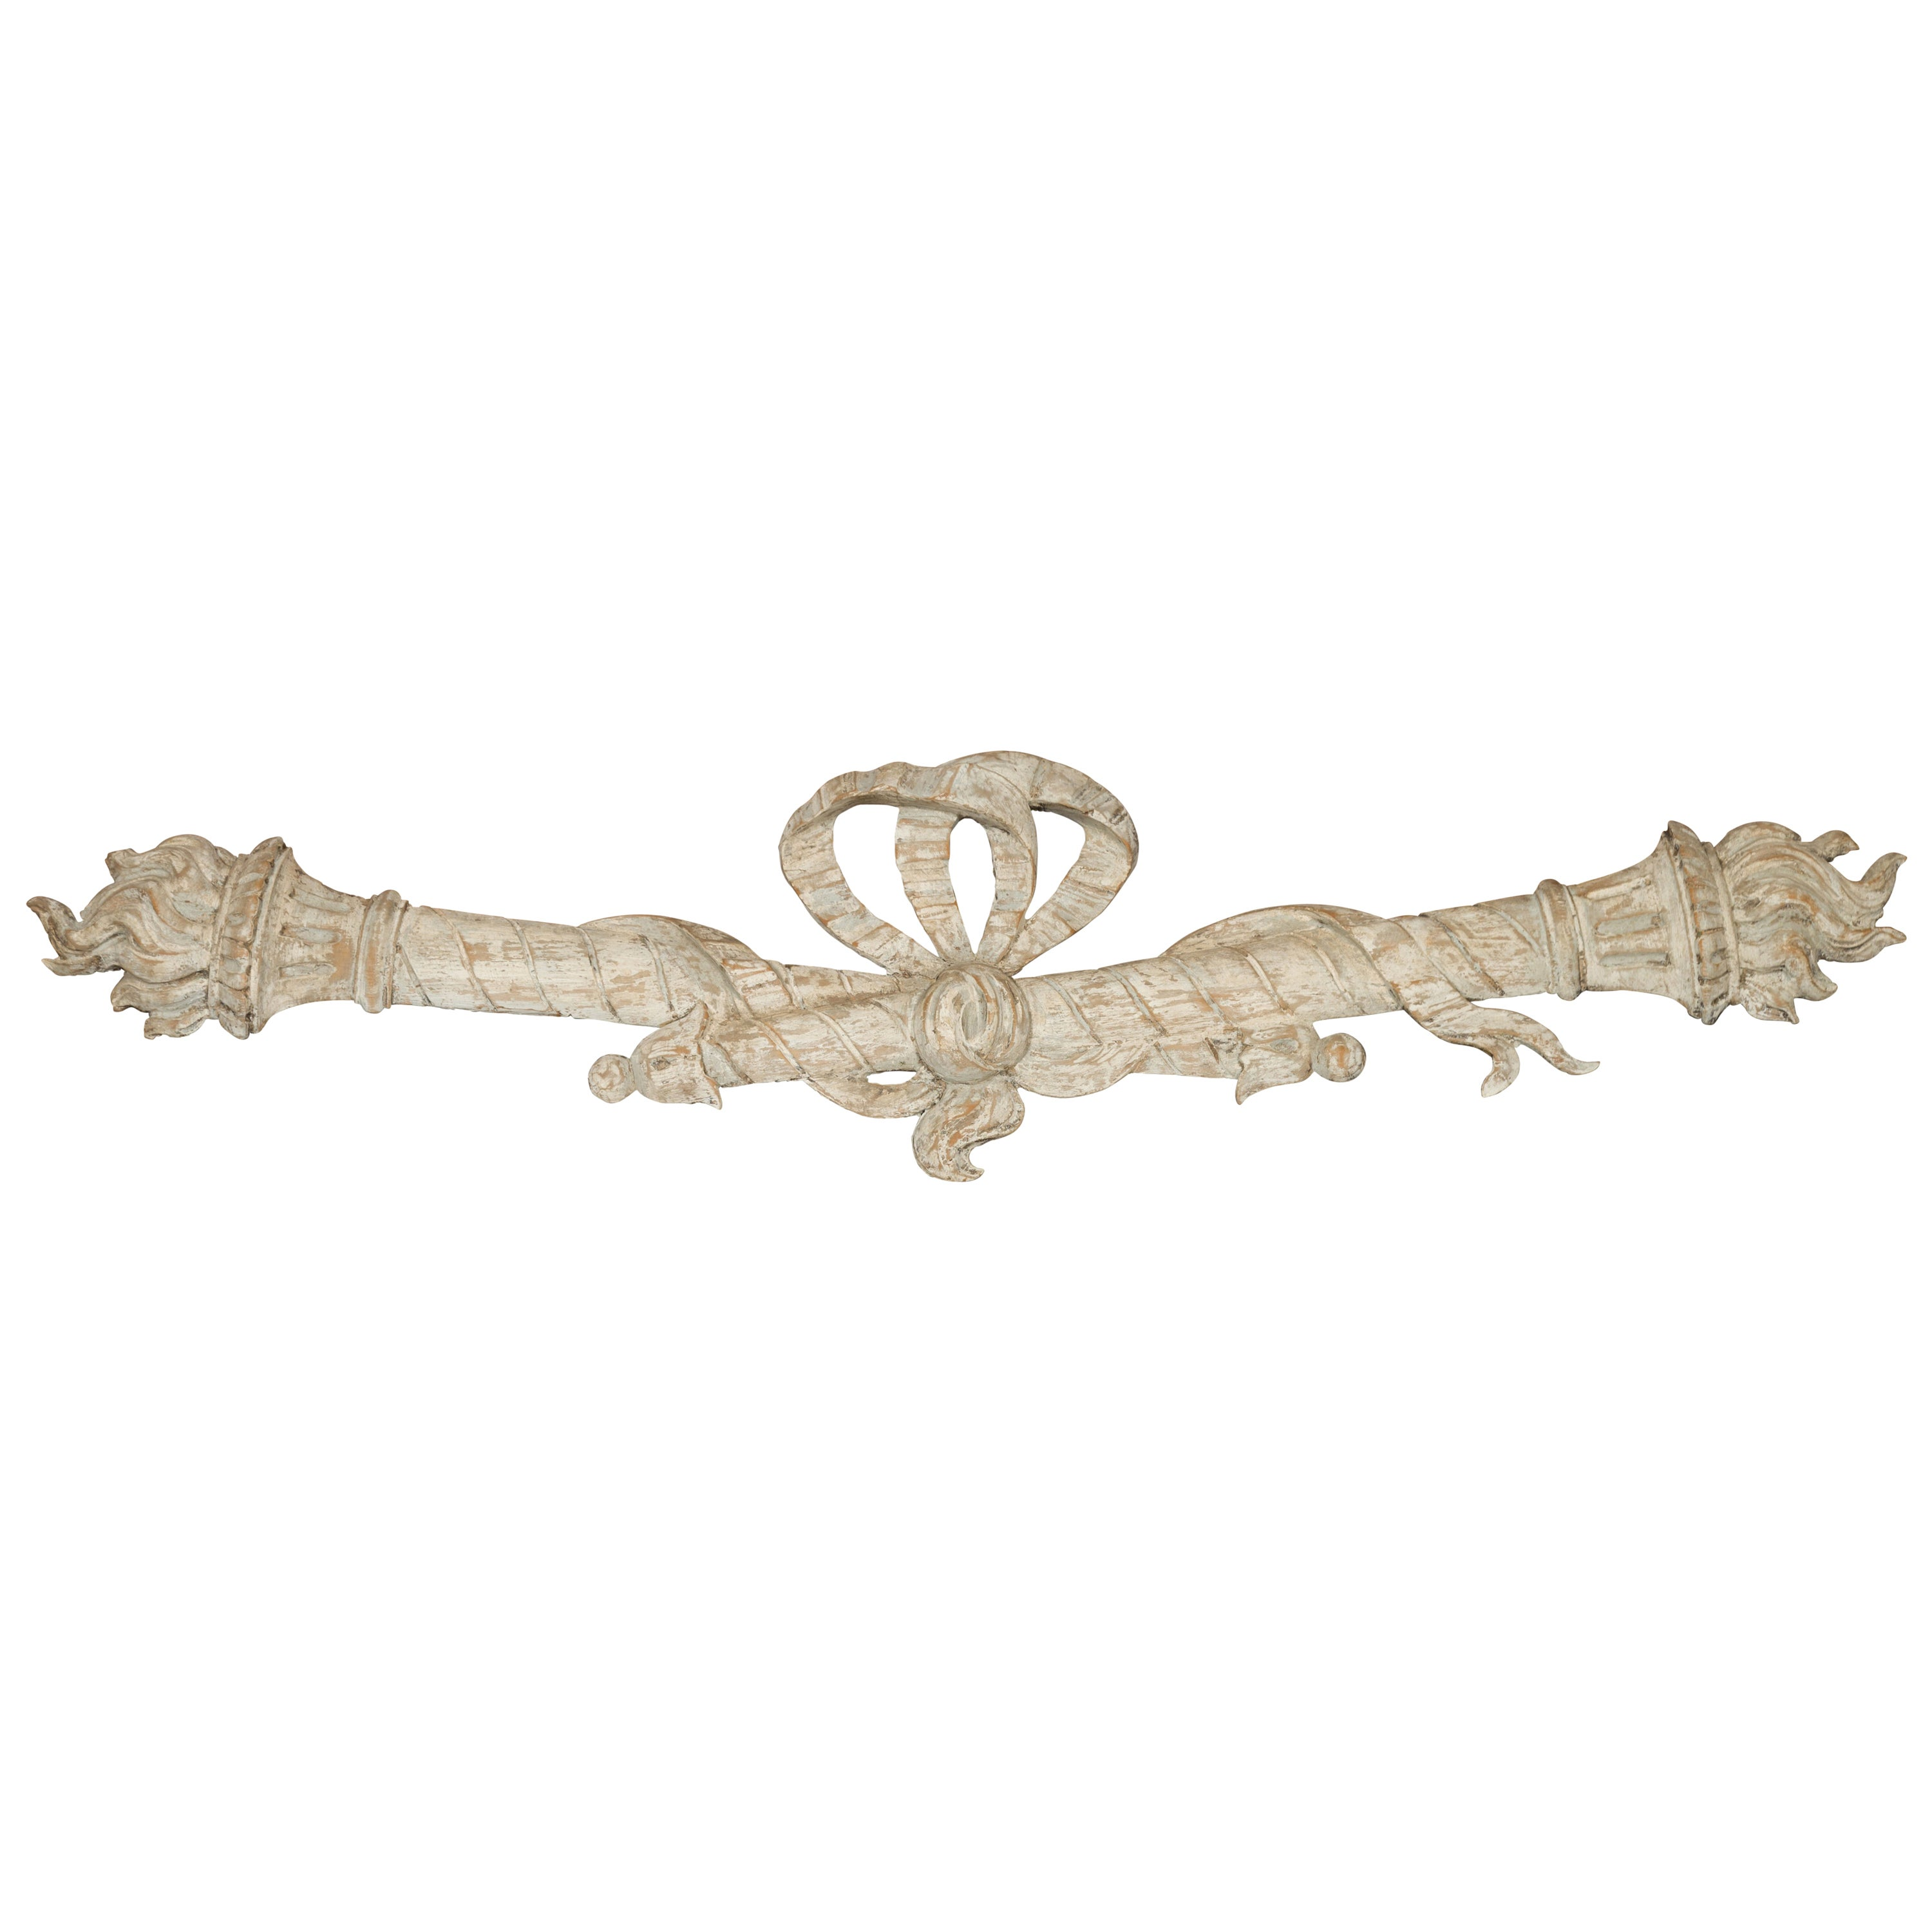 Italian 19th Century Carved Architectural Fragment with Ribbon-Tied Torches